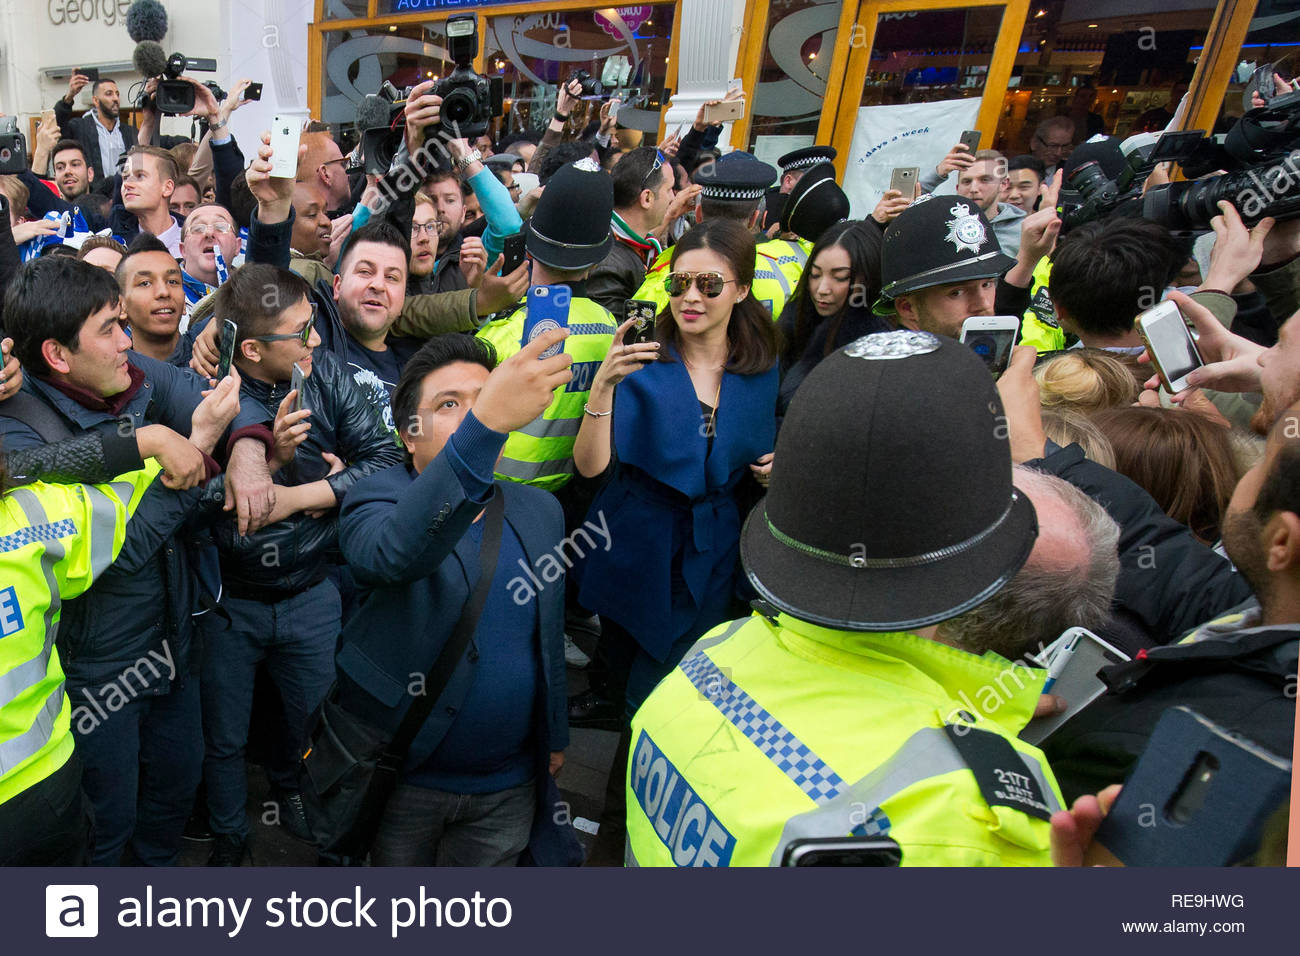 Nursara Suknama leaves a restaurant in Leicester City centre on 3rd May 2016 the day after Leicester City FC won the Premiere League title. - Stock Image